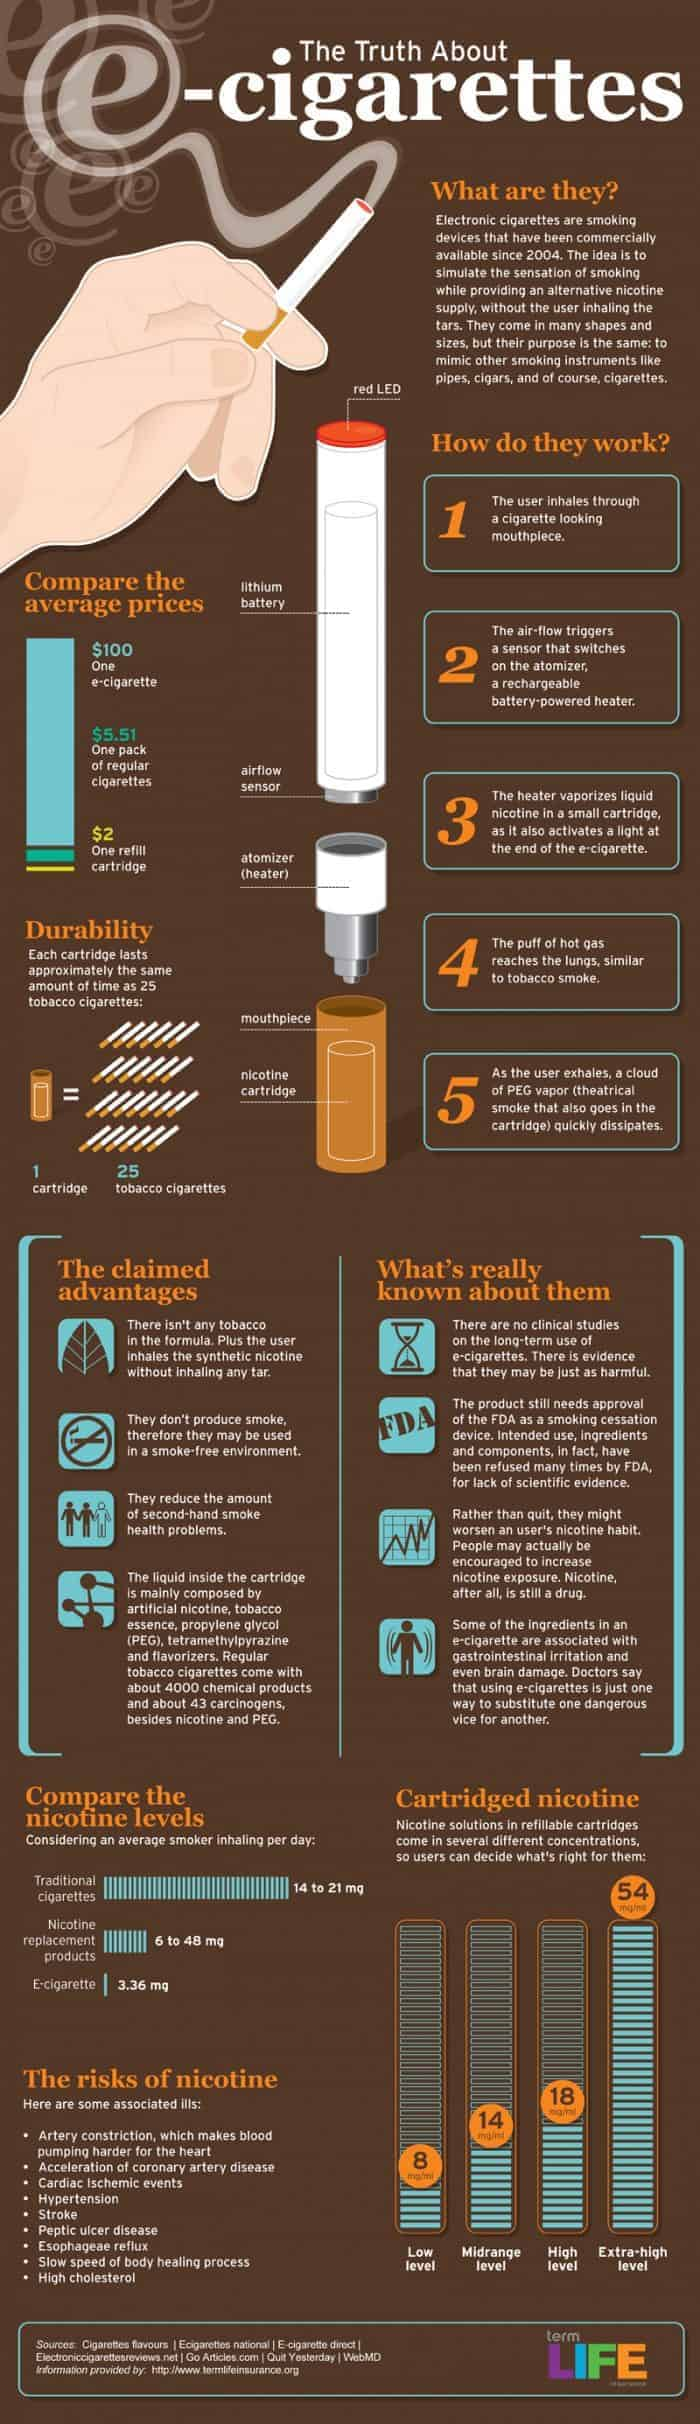 the-truth-about-ecigarettes_518423f7c8717_w1500